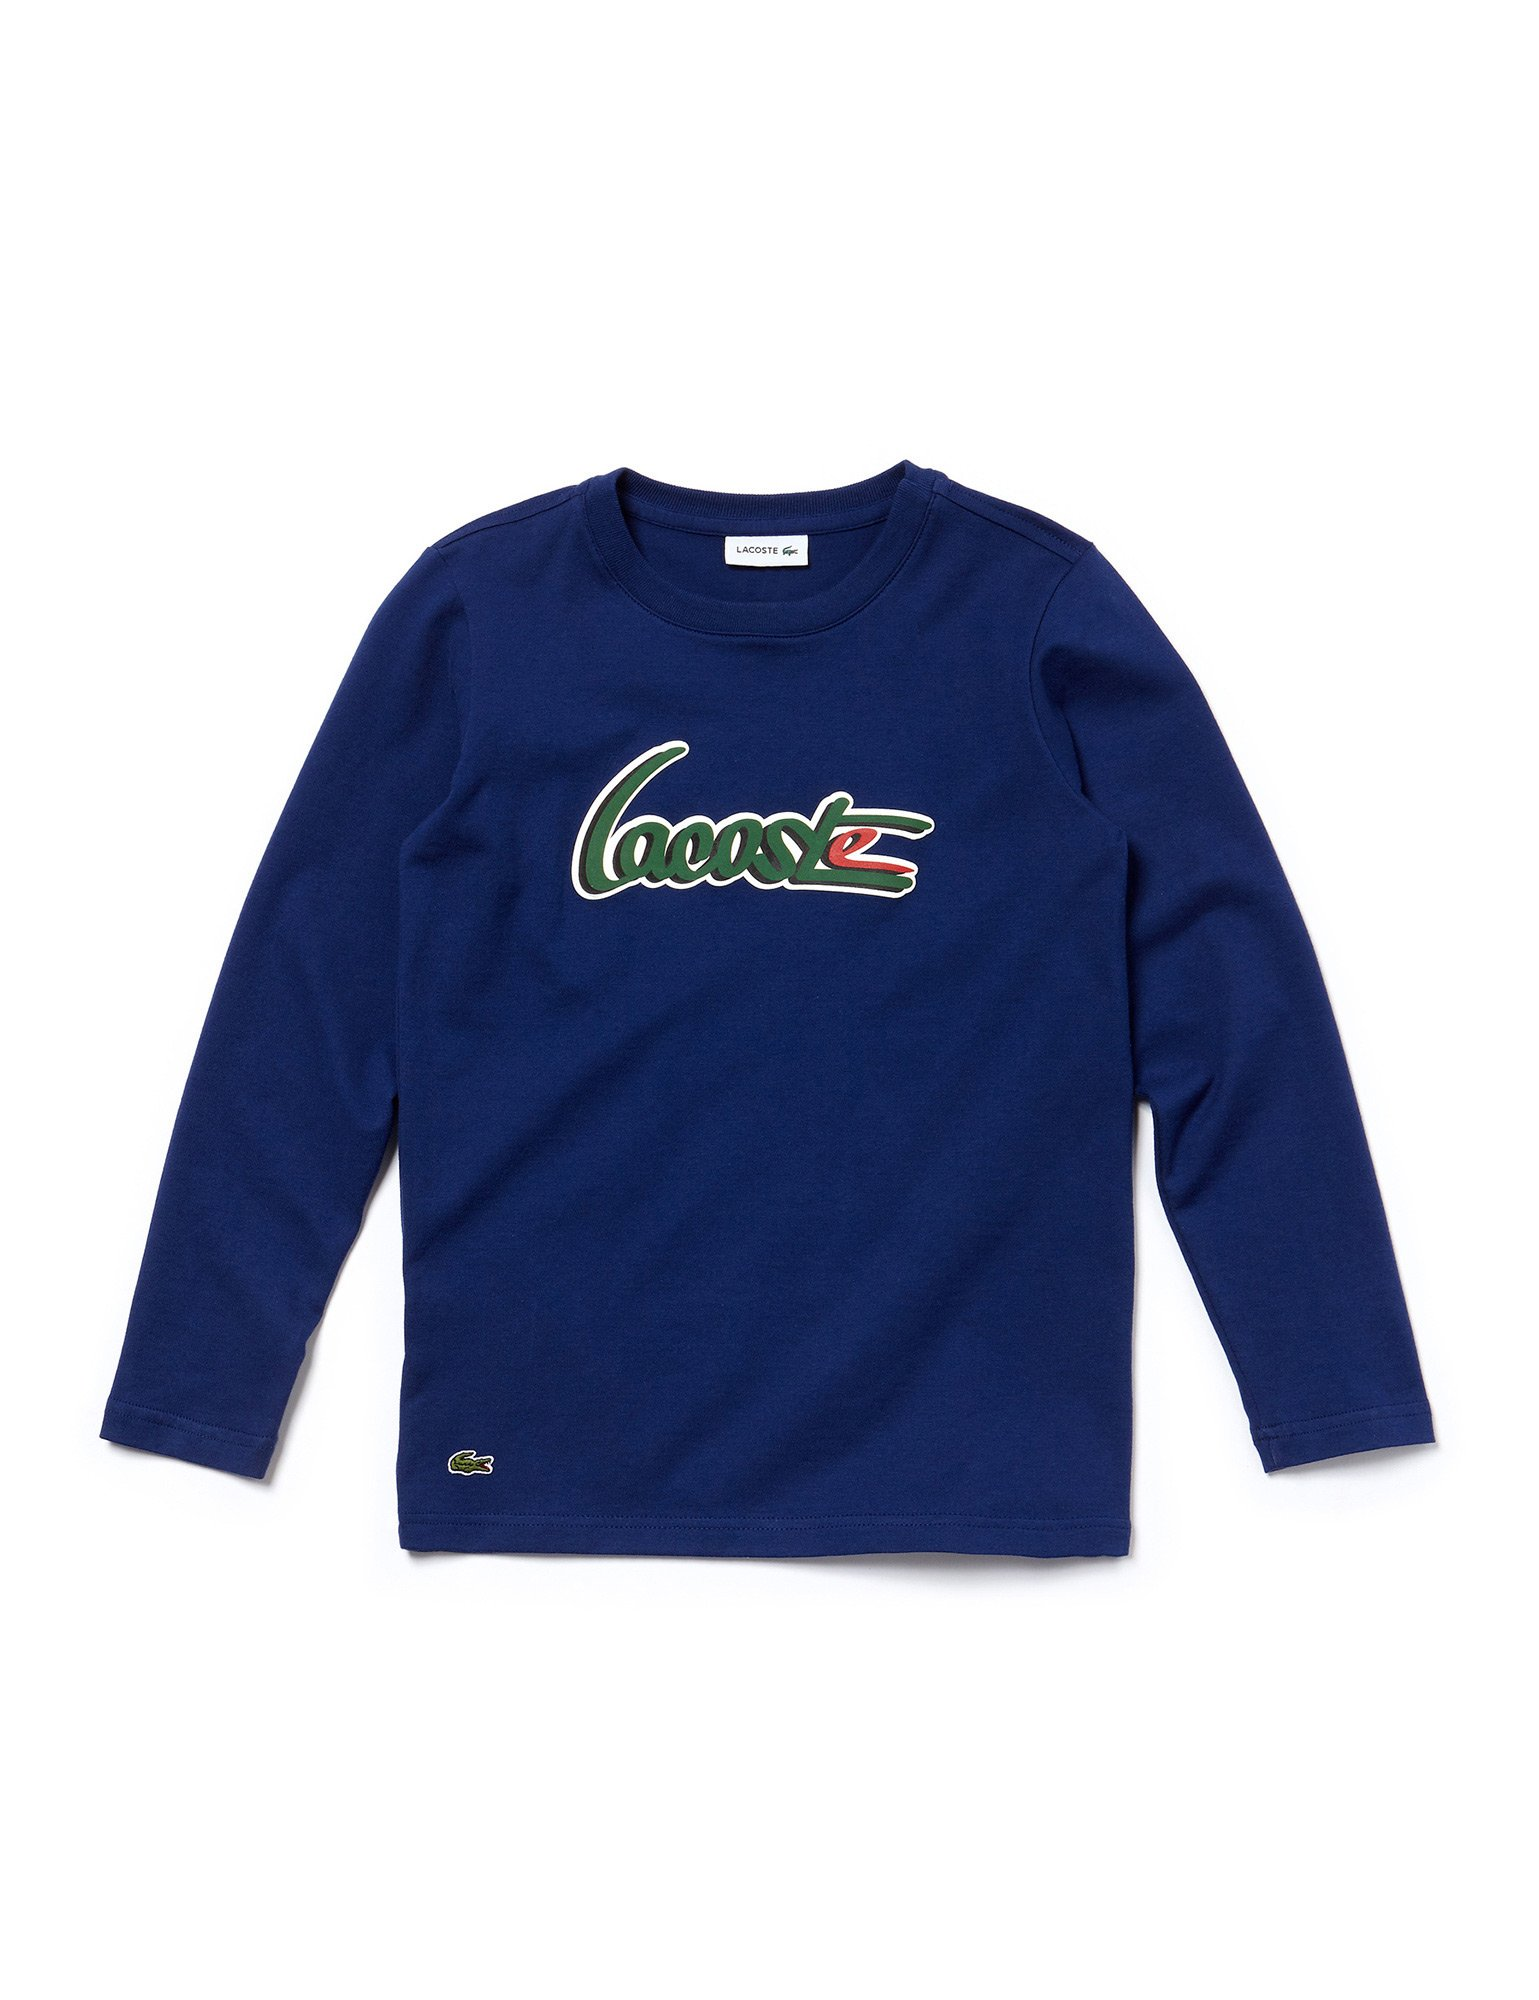 Lacoste Boy's Navy Long Sleeve Top With Logo in Size 4 Years (104 cm) Navy by Lacoste